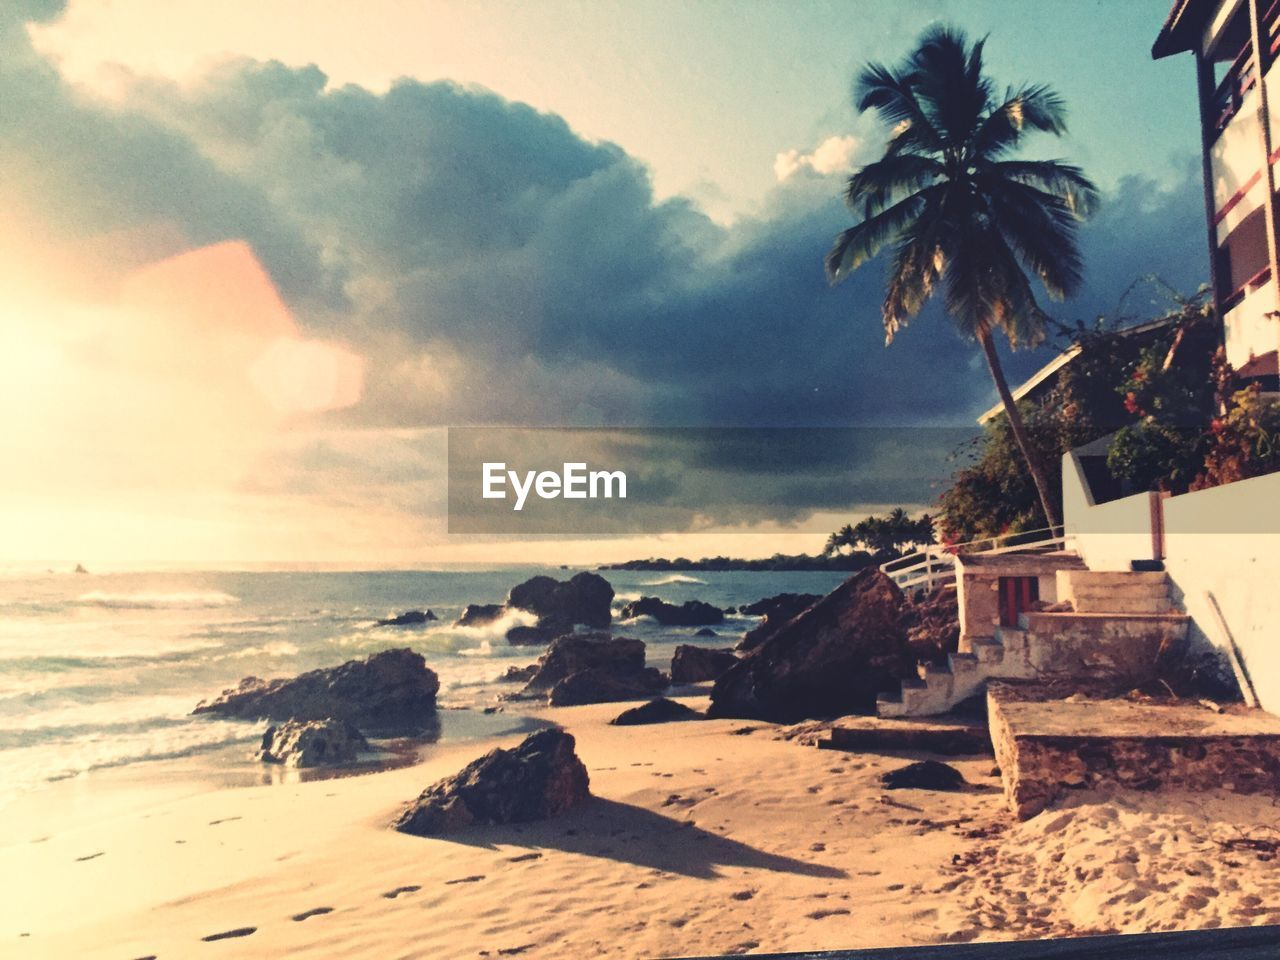 sea, beach, sky, scenics, horizon over water, sand, nature, beauty in nature, tranquil scene, tranquility, no people, outdoors, day, cloud - sky, palm tree, tree, water, vacations, wave